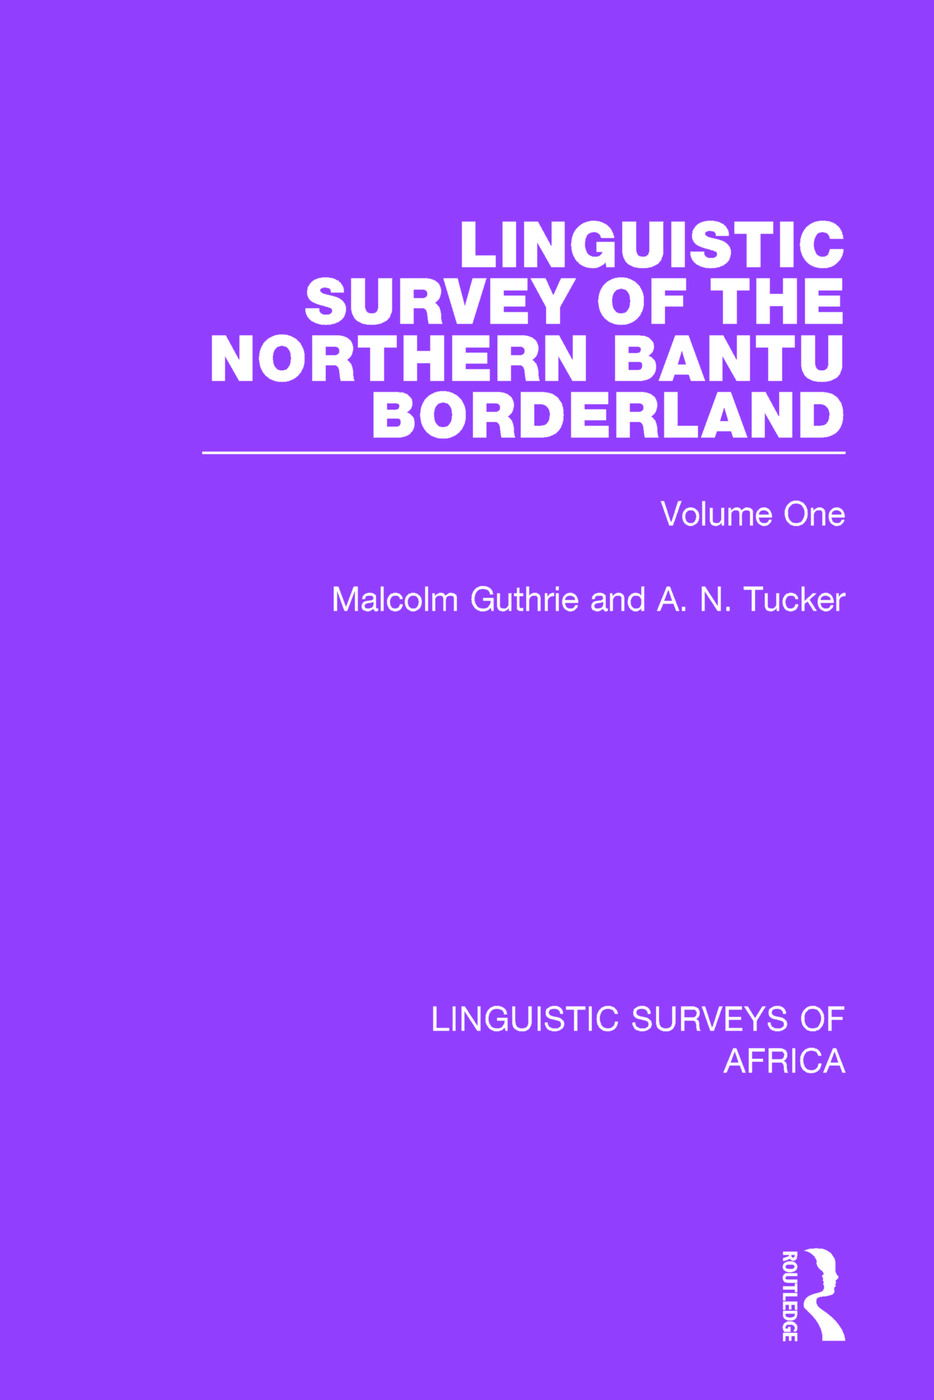 Linguistic Survey of the Northern Bantu Borderland: Volume One book cover